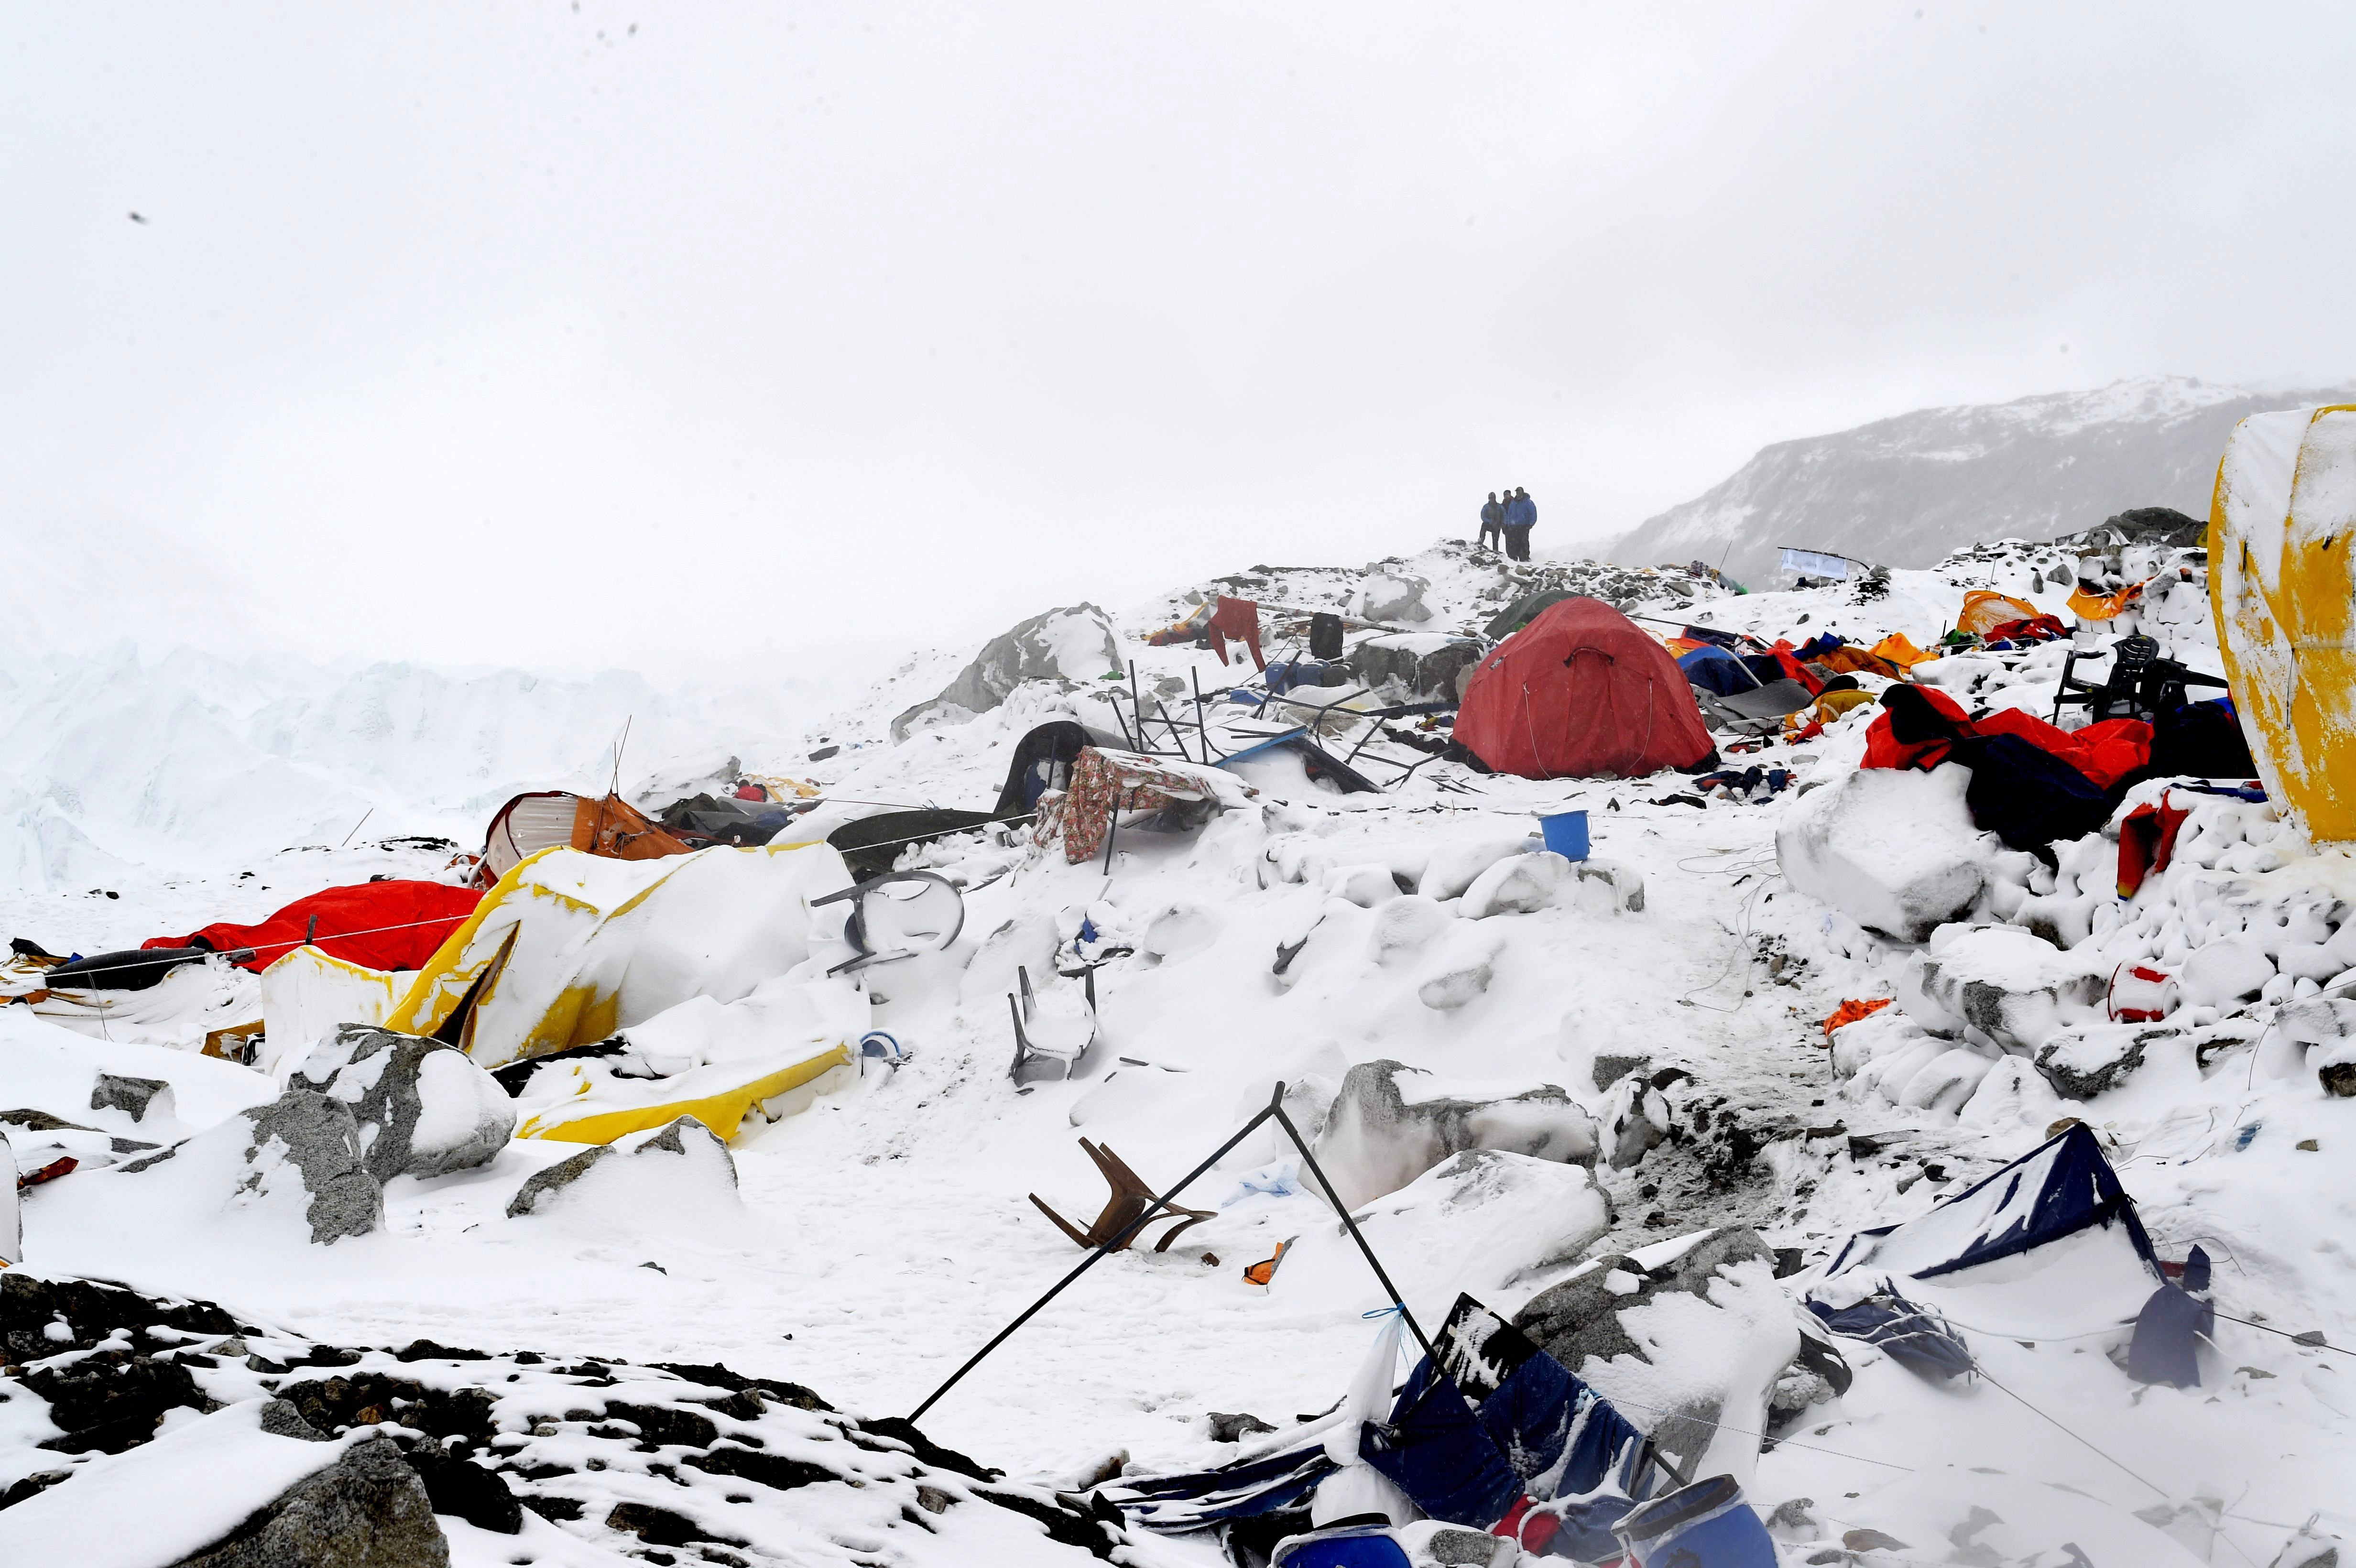 The Mount Everest base camp was flattened by an avalanche that killed 17 people, including three Americans, following a 7.8 magnitude earthquake in Nepal. (Getty)